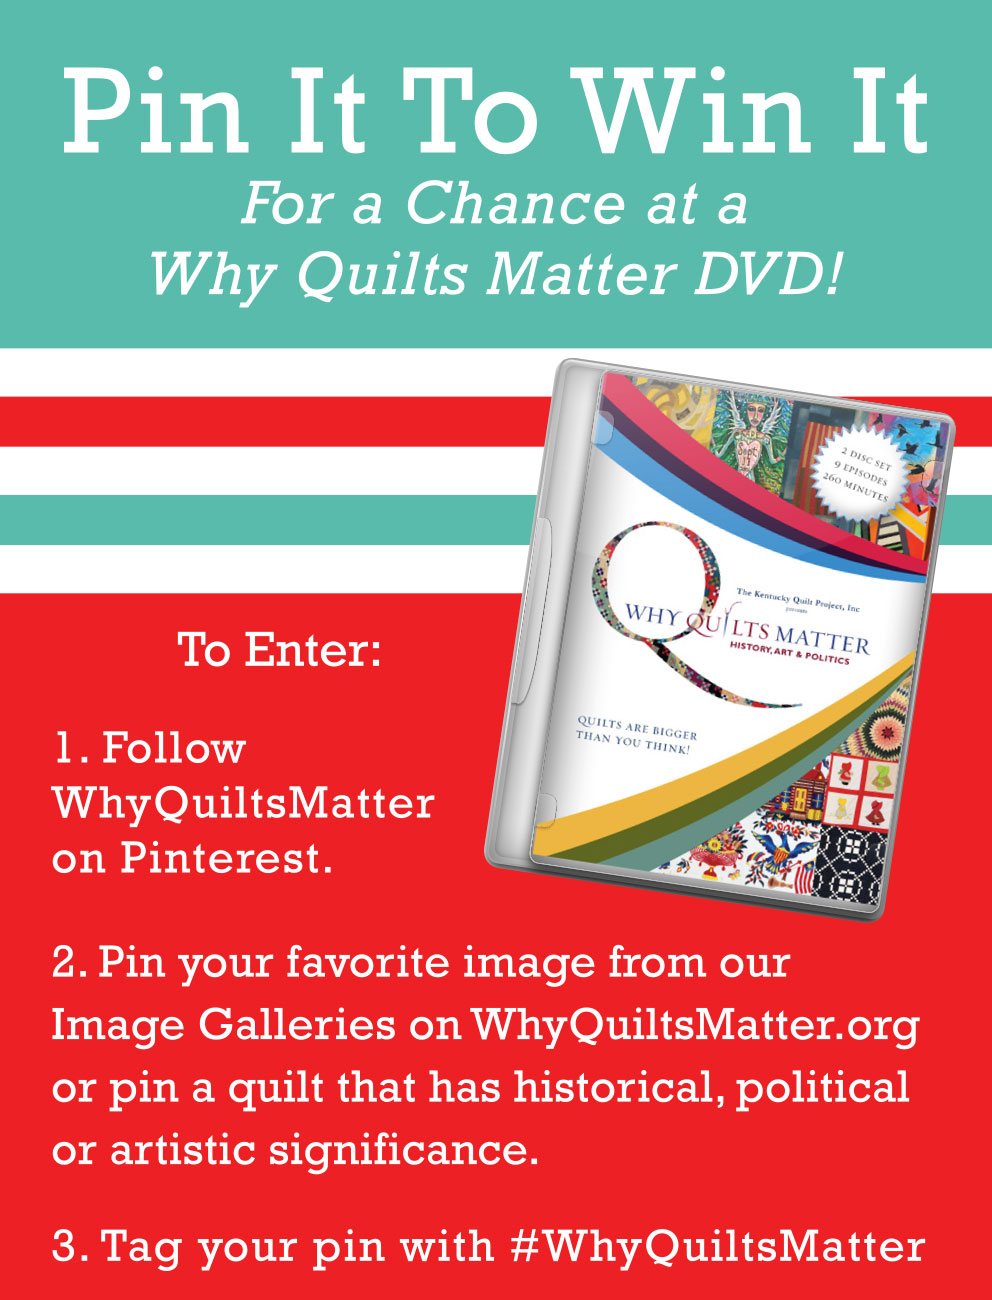 Why Quilts Matter - Pin It to Win it